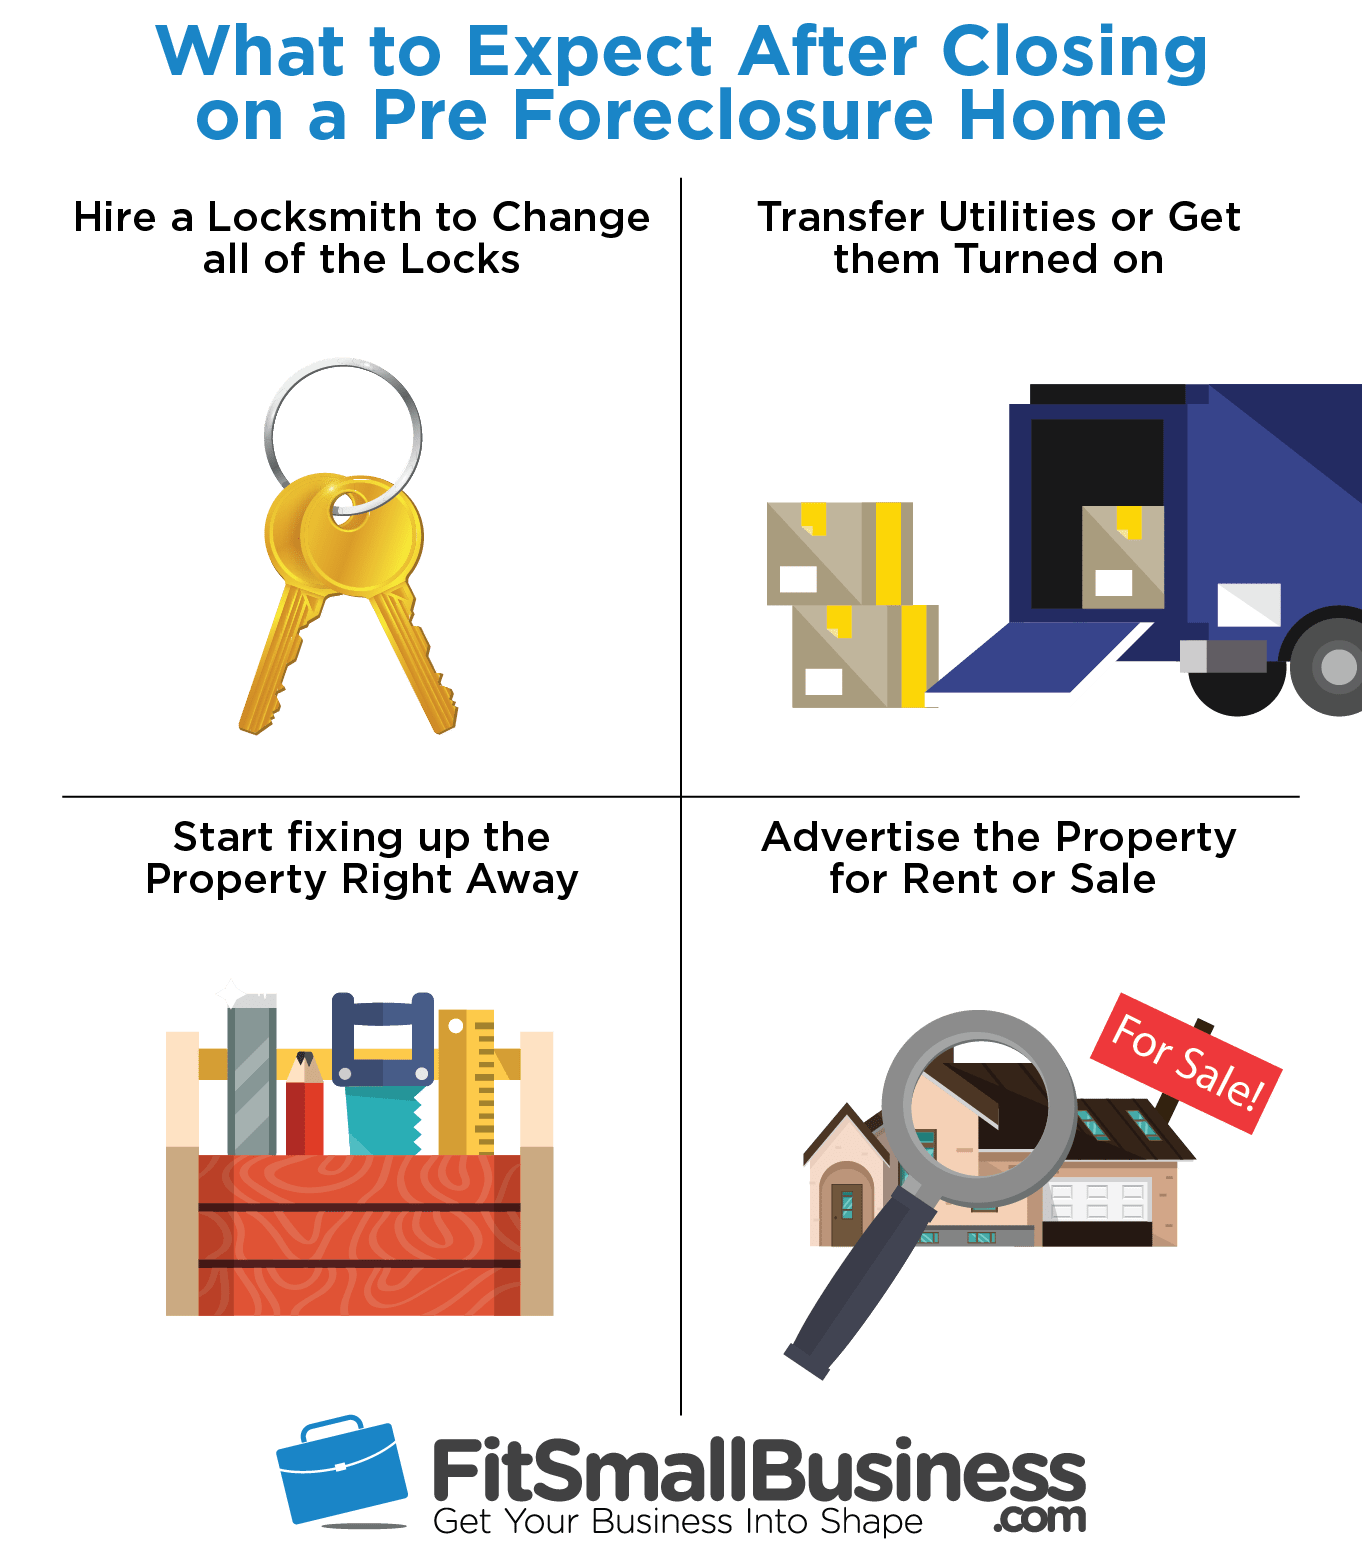 What to Expect After Closing - how to buy a pre foreclosure home